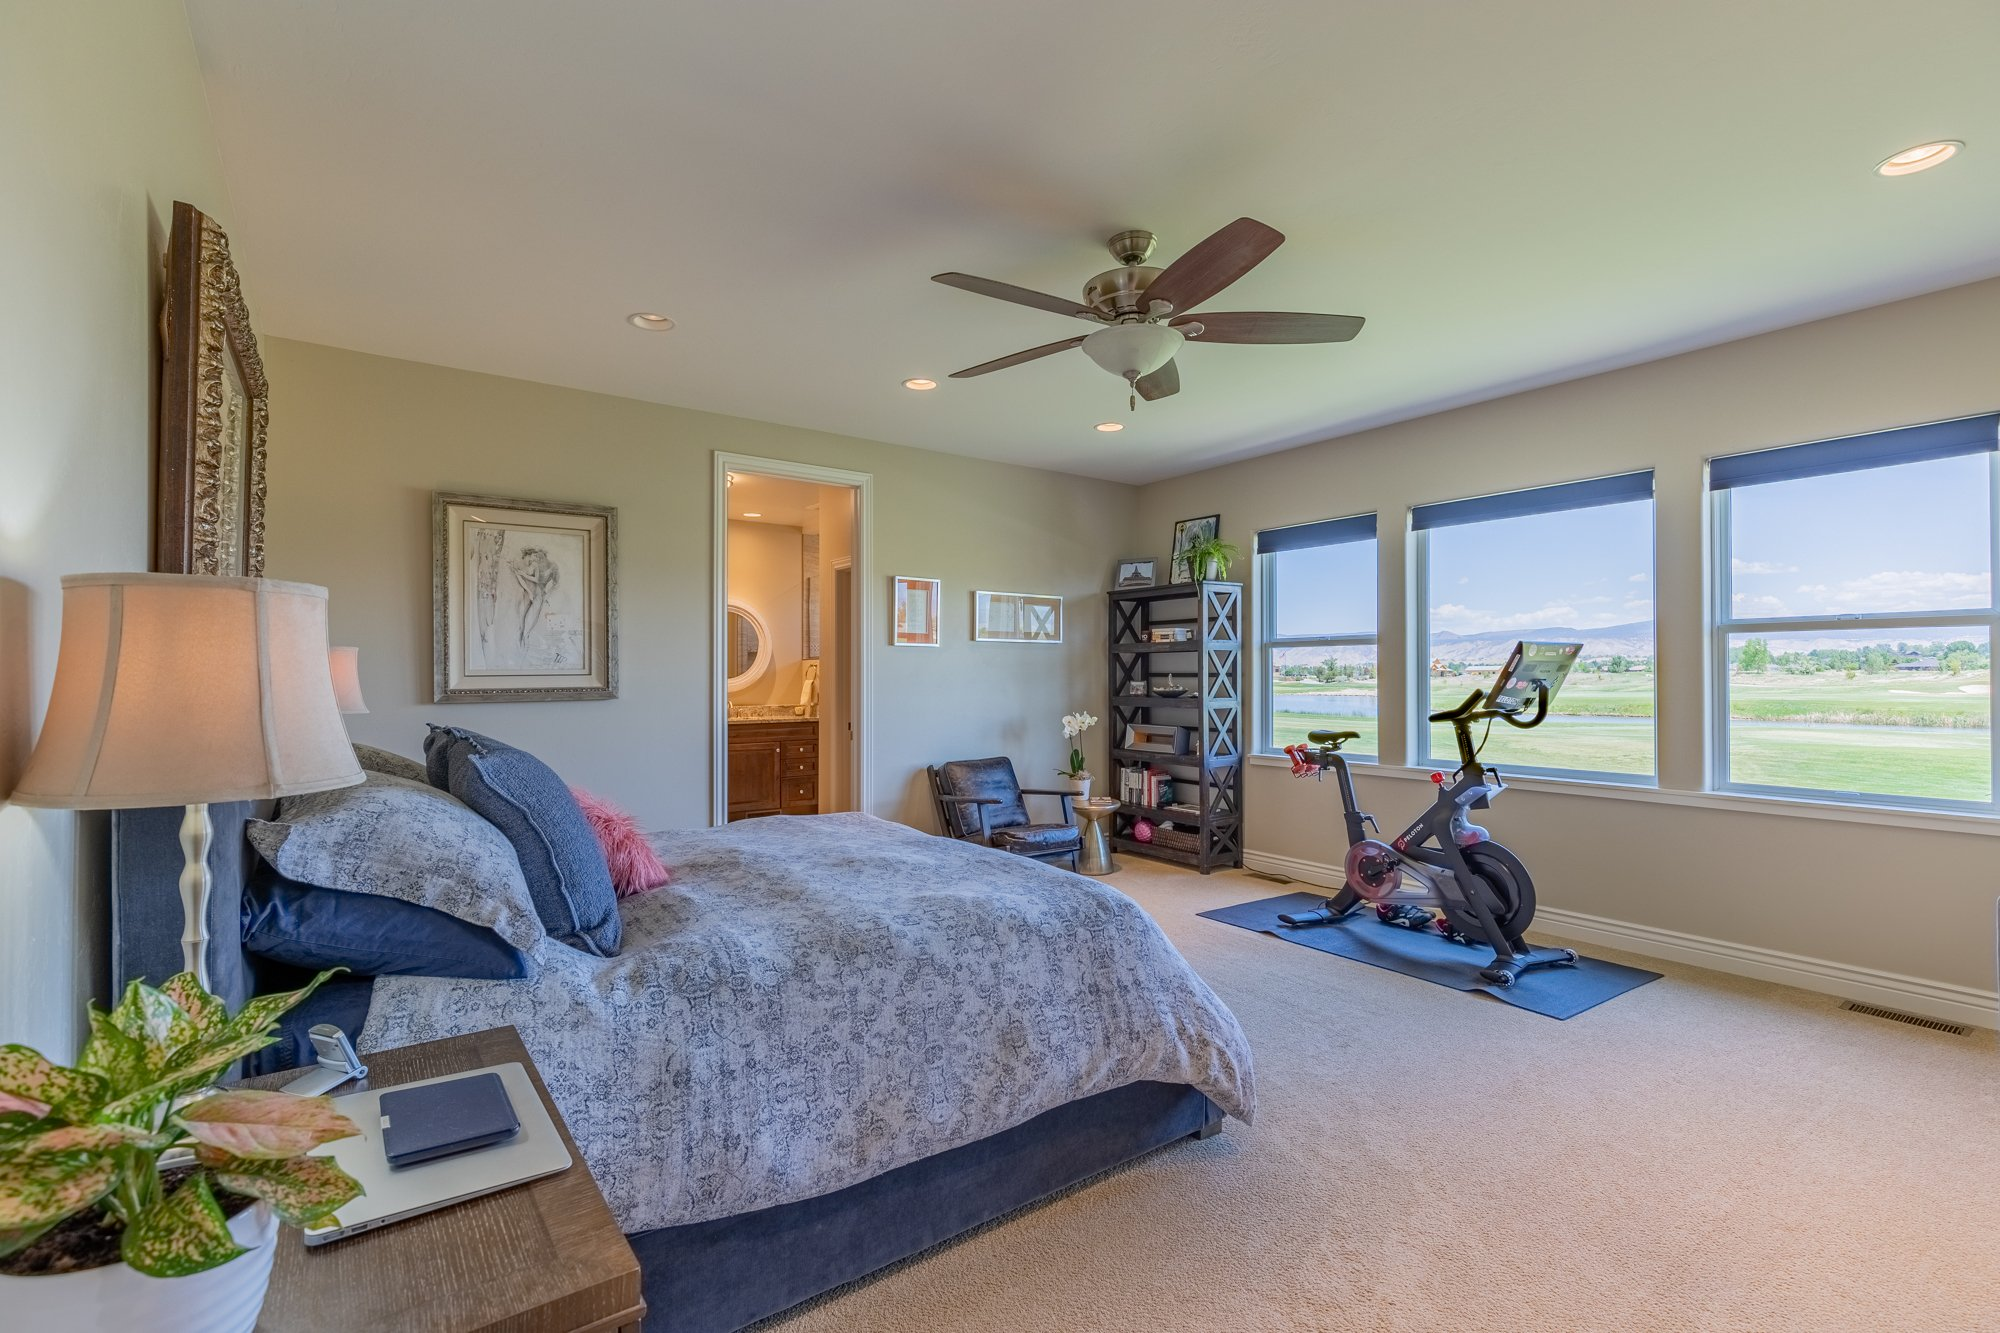 Master Bedroom with Ceiling Fan - 2927 Sleeping Bear Rd Montrose, CO 81401 - Atha Team Real Estate